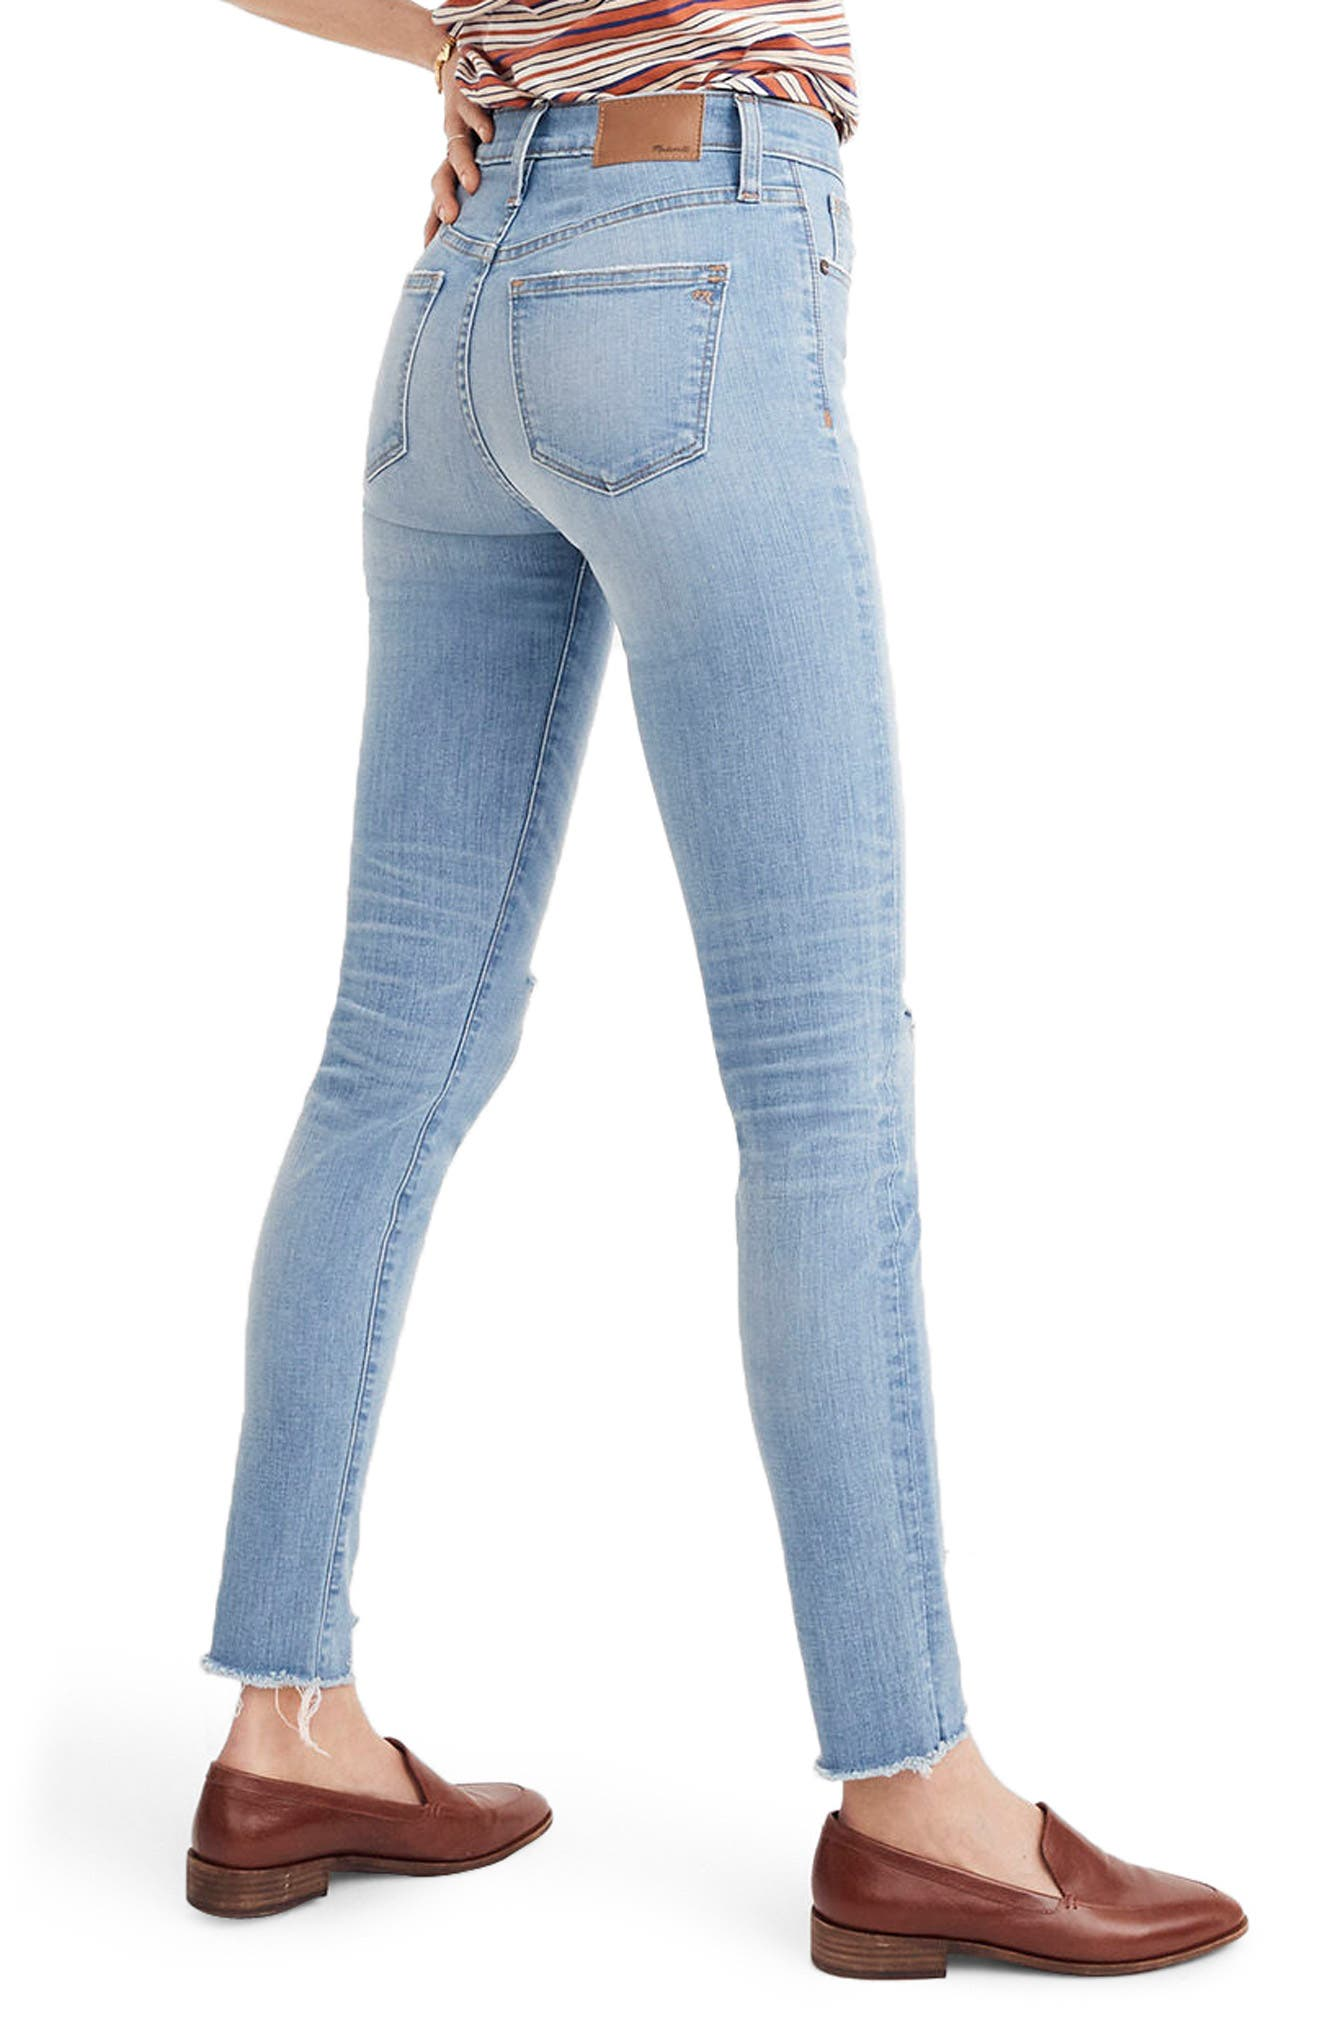 9-Inch High Waist Skinny Jeans,                             Alternate thumbnail 3, color,                             Ontario Wash